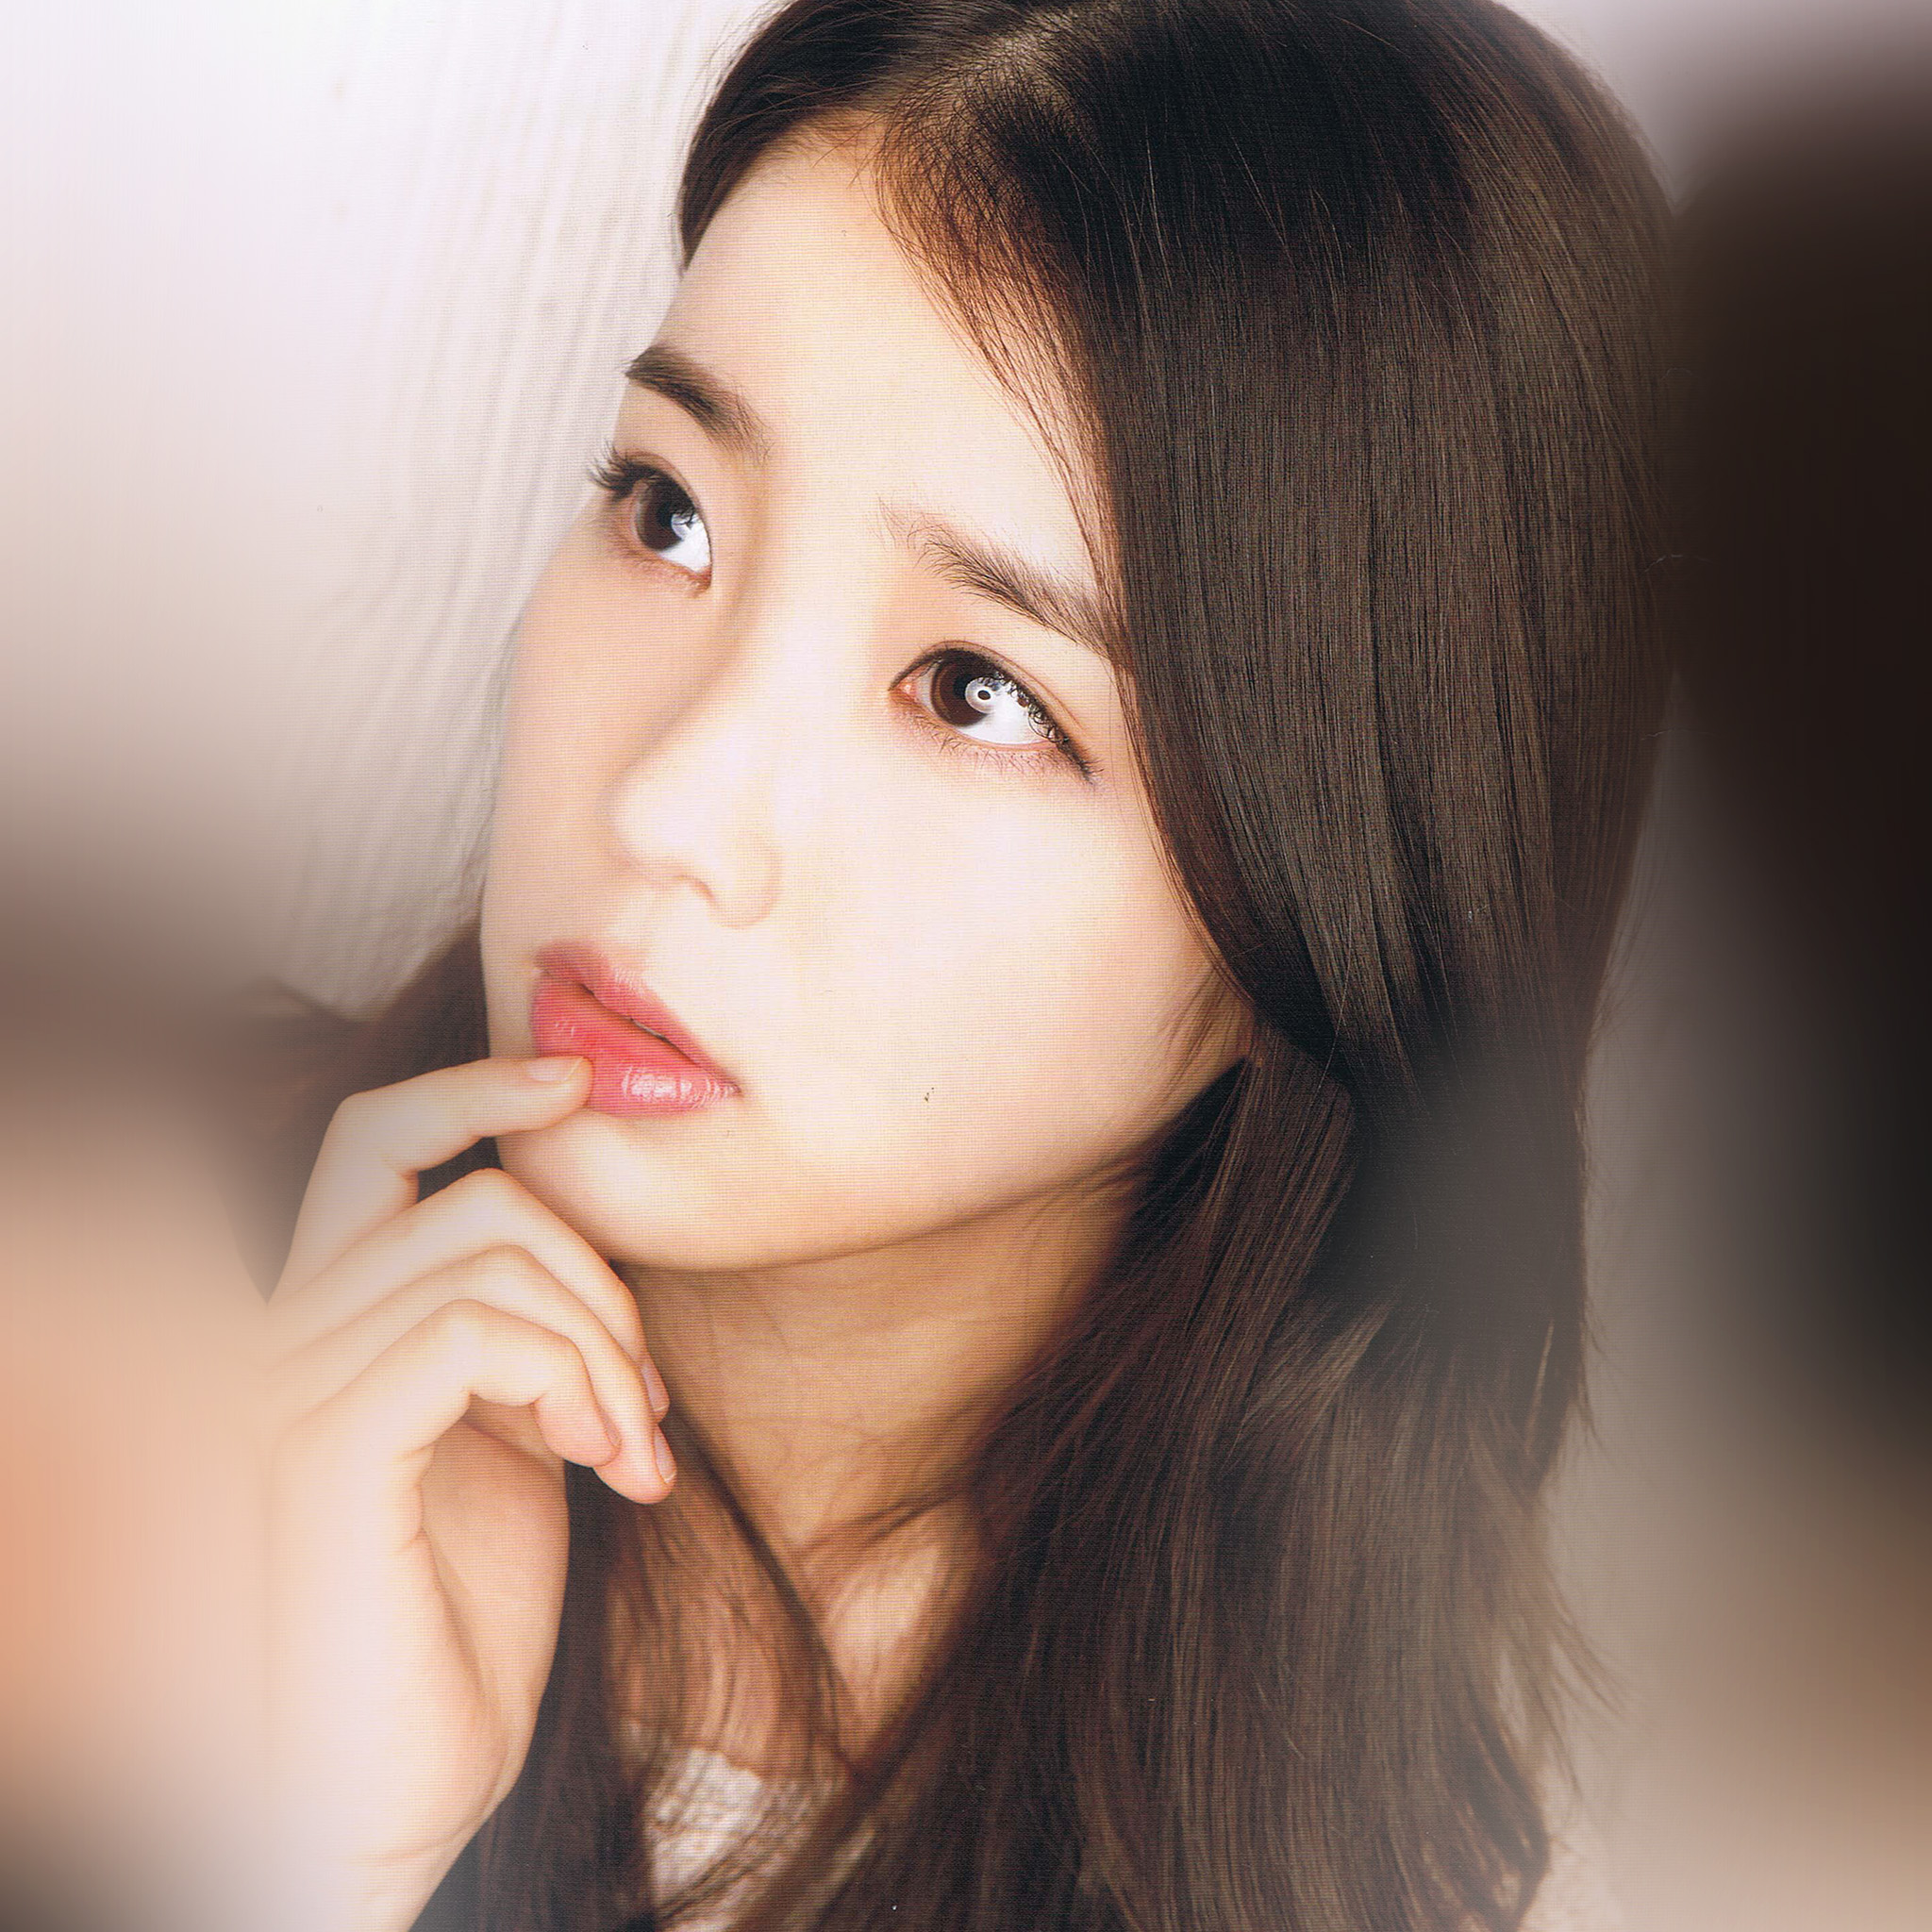 Cute Small Girl Hd Wallpaper Hl65 Kpop Iu Girl Music Cute Wallpaper